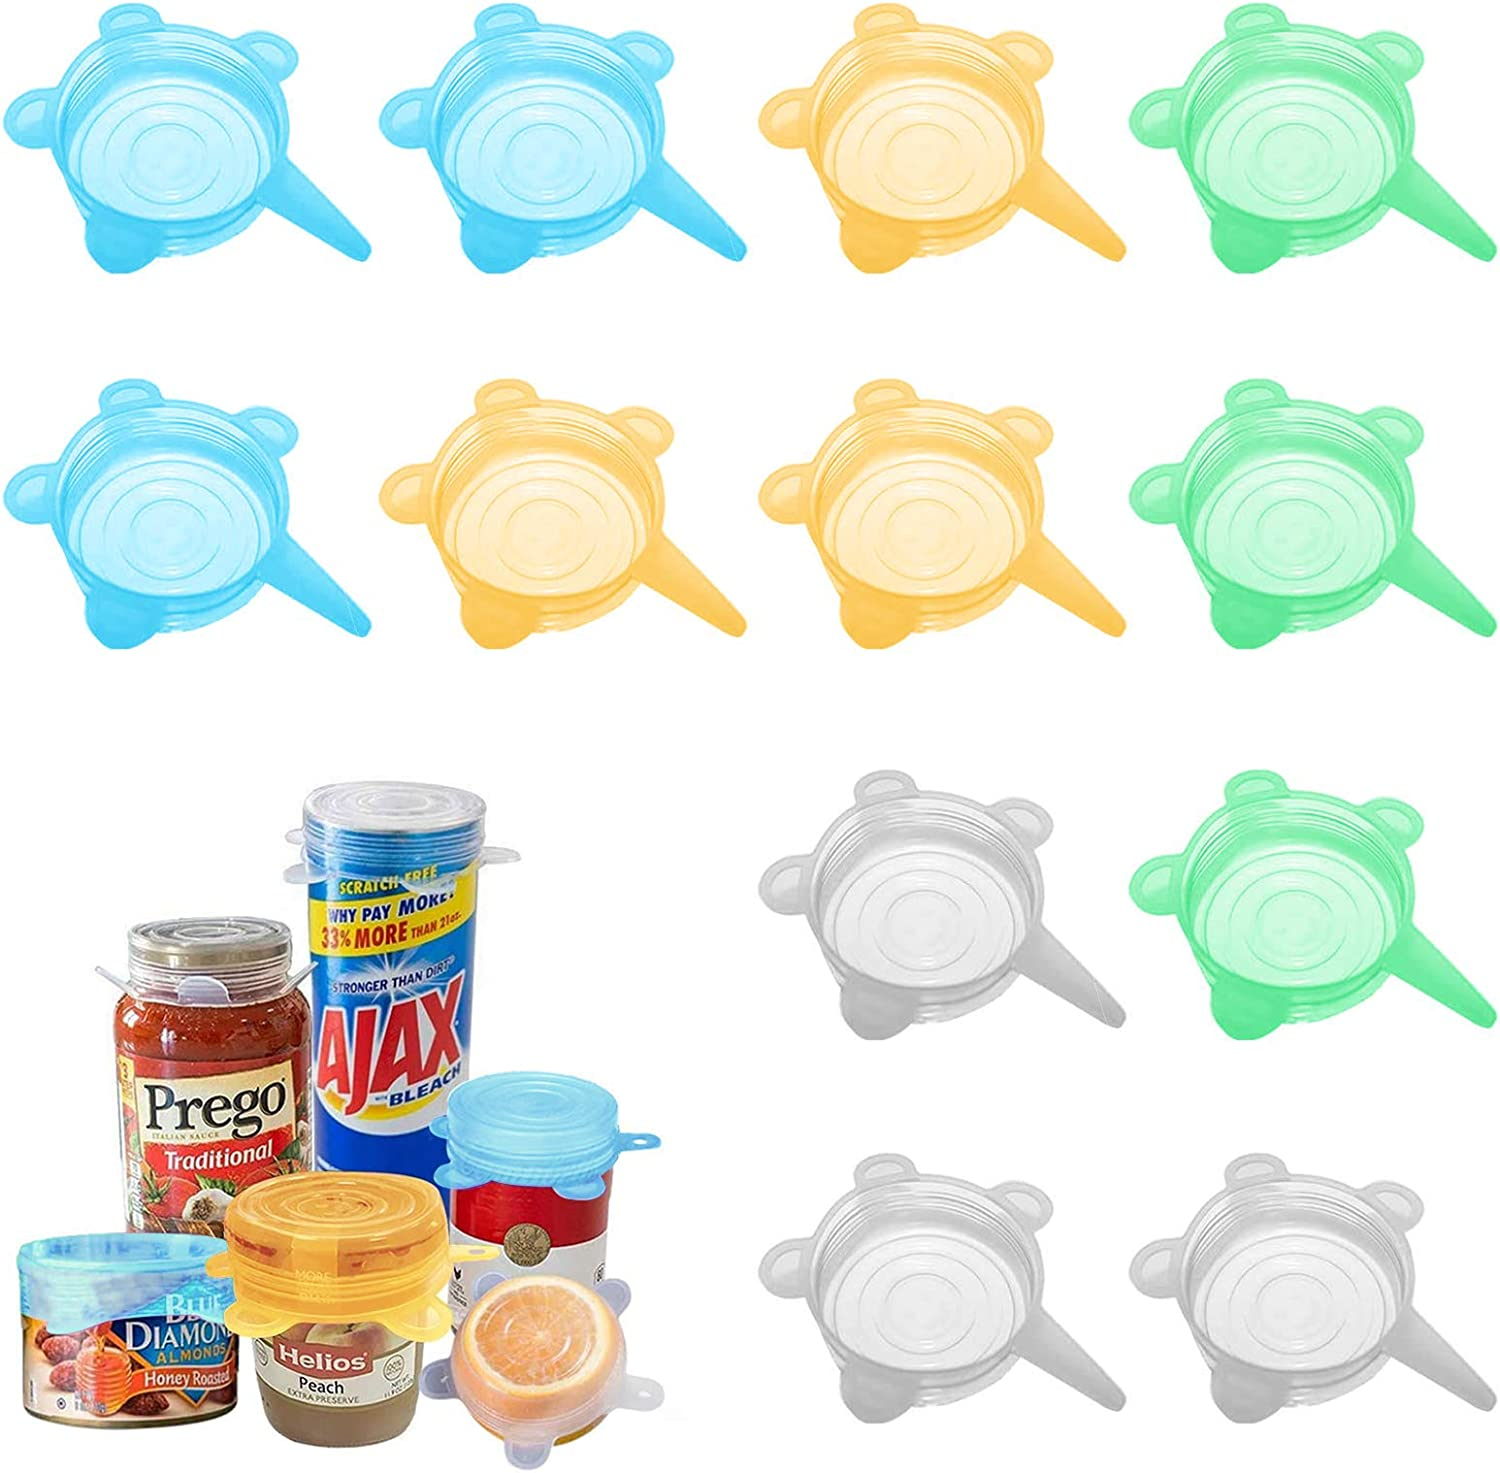 Silicone Stretch Lids6Pack 2.6'' Small, Reusable, Durable and Expandable Food Covers, Keeping Food Fresh,for Cups,Small Bowls Cans Jars Fruits Vegetables.